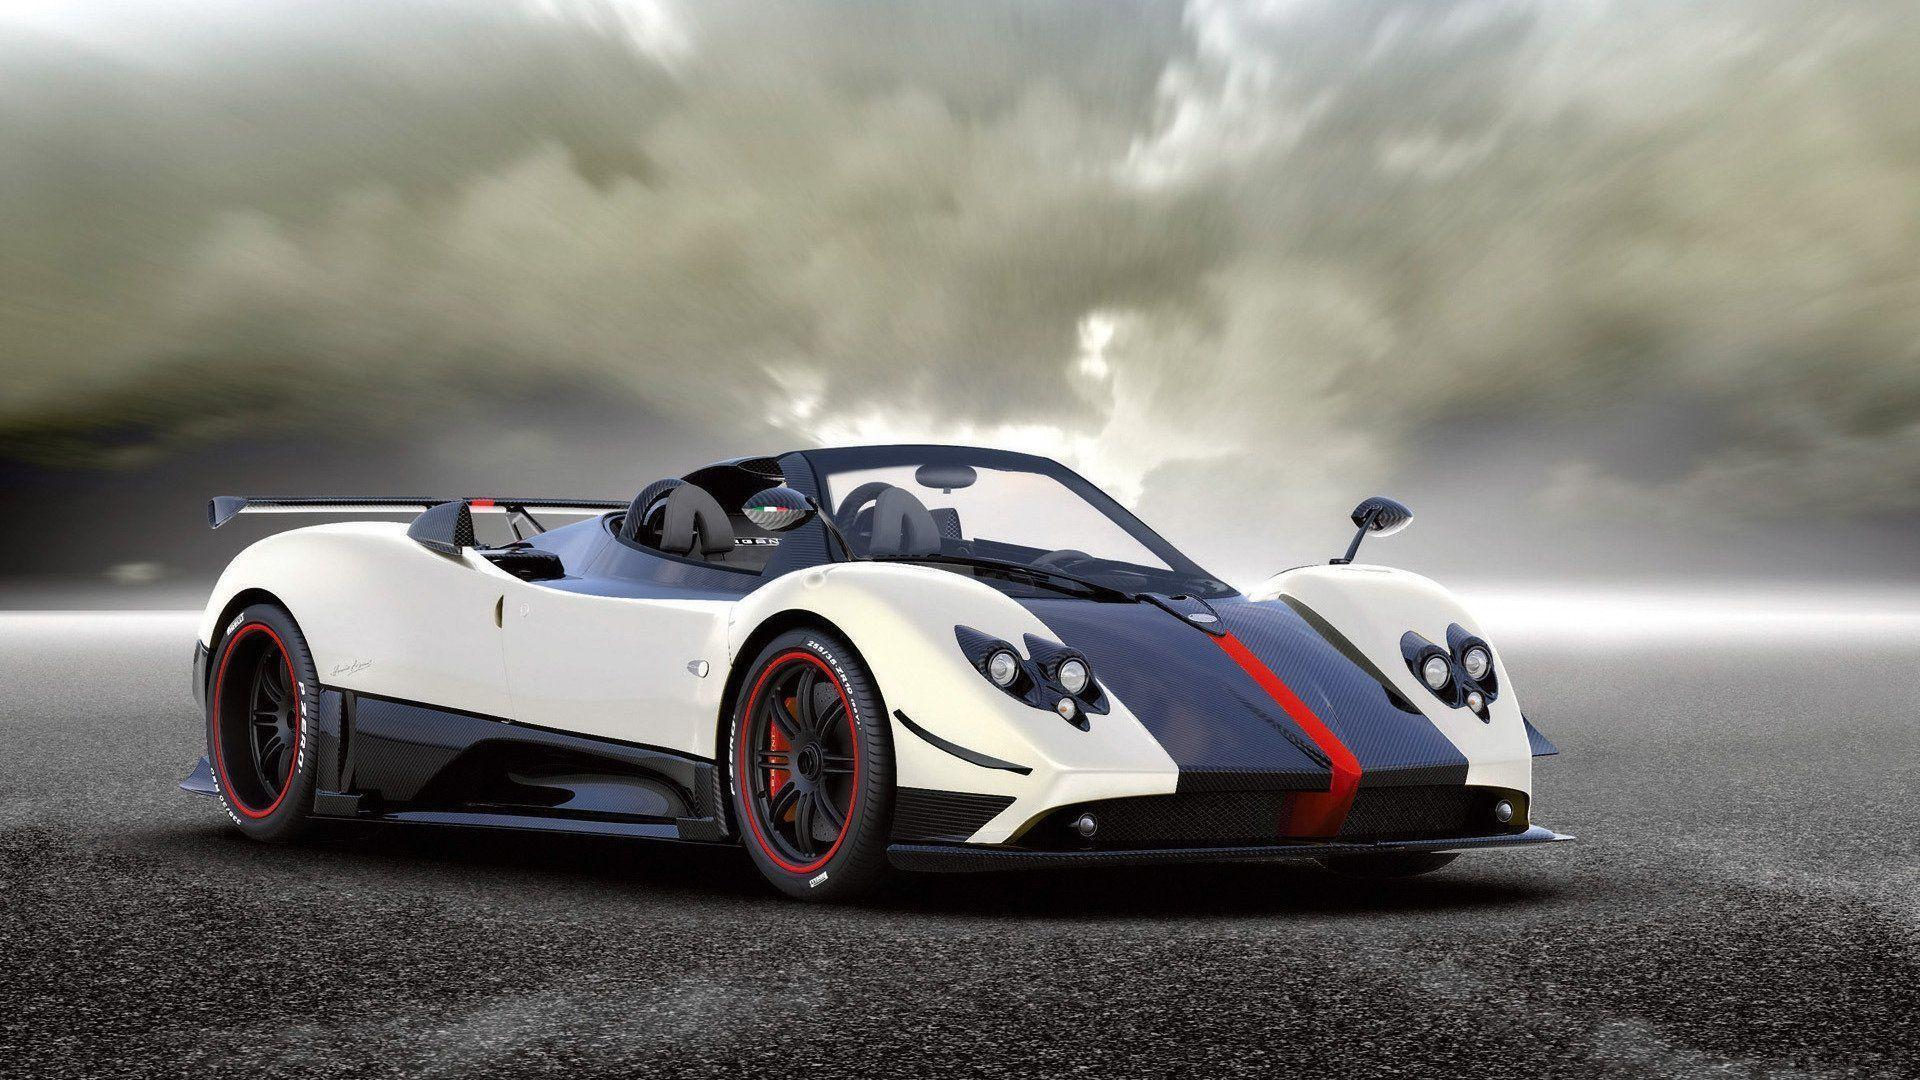 Cool Cars U2013 1920×1080 High Definition Wallpaper, Background .